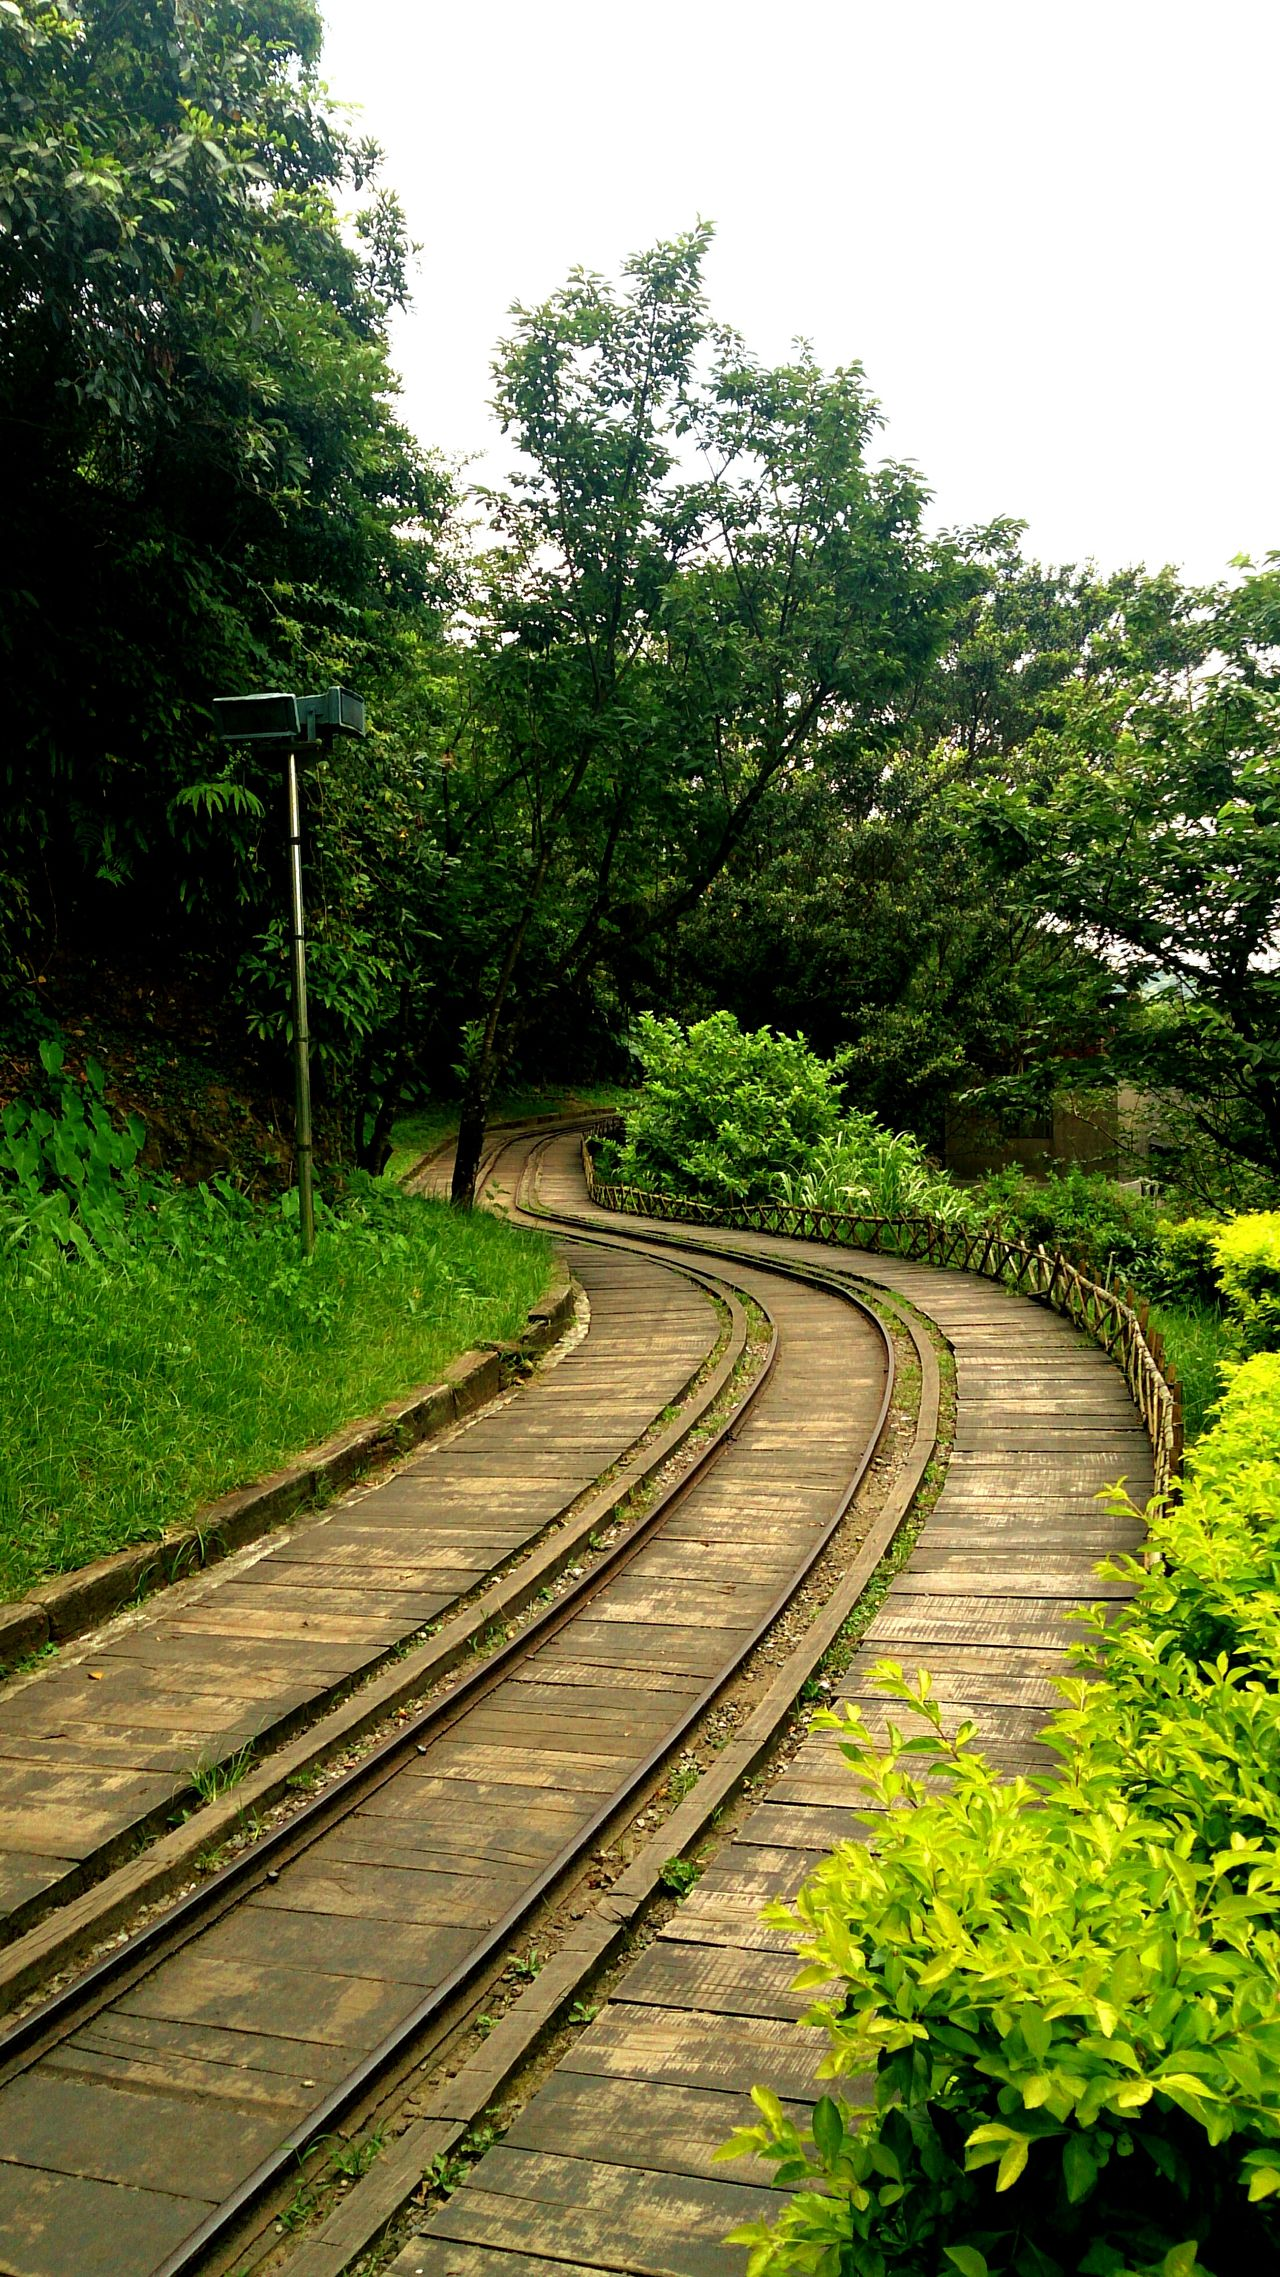 Train track Taking Photos 金瓜石 Train Tracks Traveling Enjoying The View Good Shot EyeEm Best Shots Nice Trip Popular Place